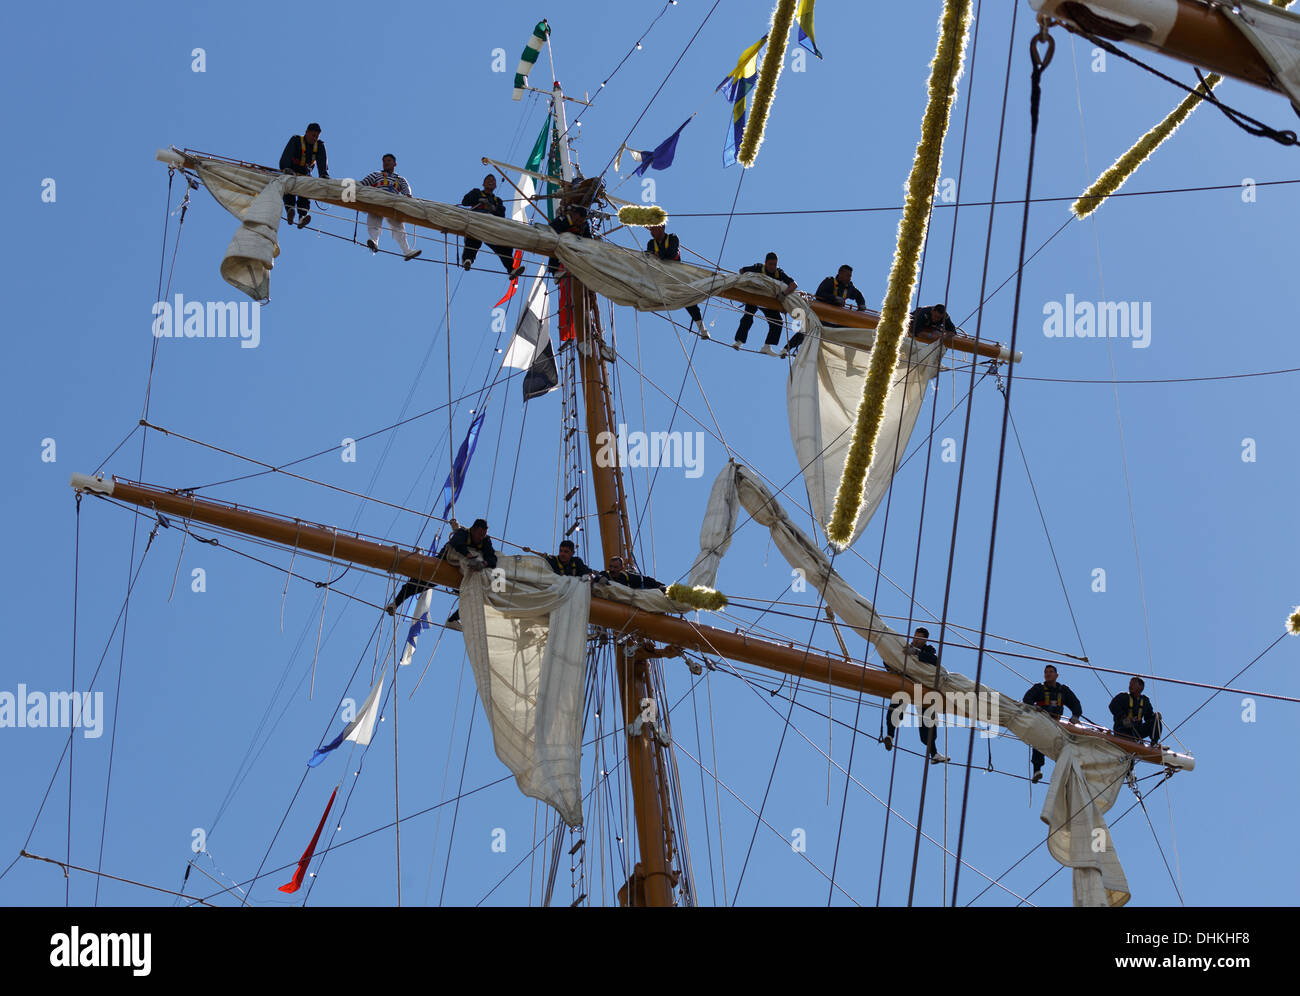 Crew members of the Mexican Navy training vessel ARM Cuauhtémoc handling her sails in The Tall Ships Races of 2013. - Stock Image